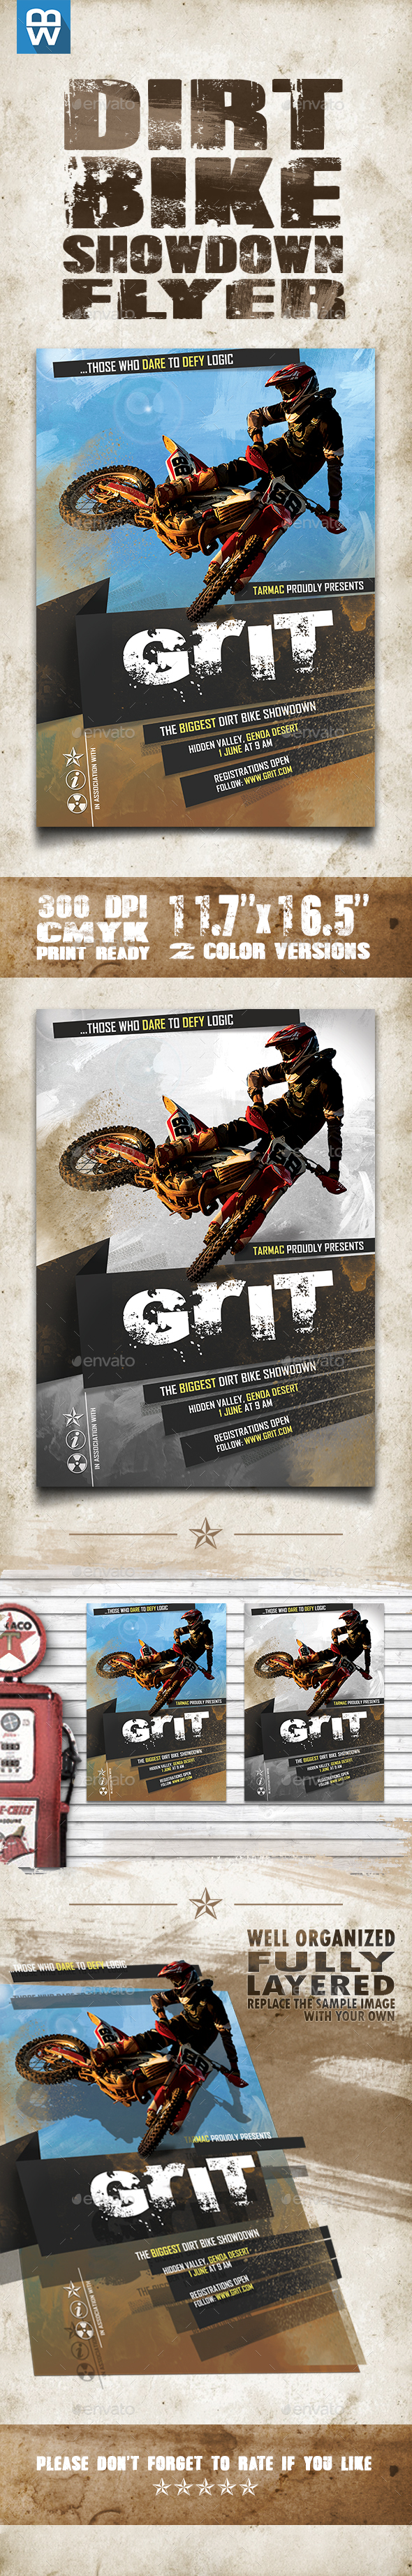 Dirt Bike Showdown Flyer - Sports Events